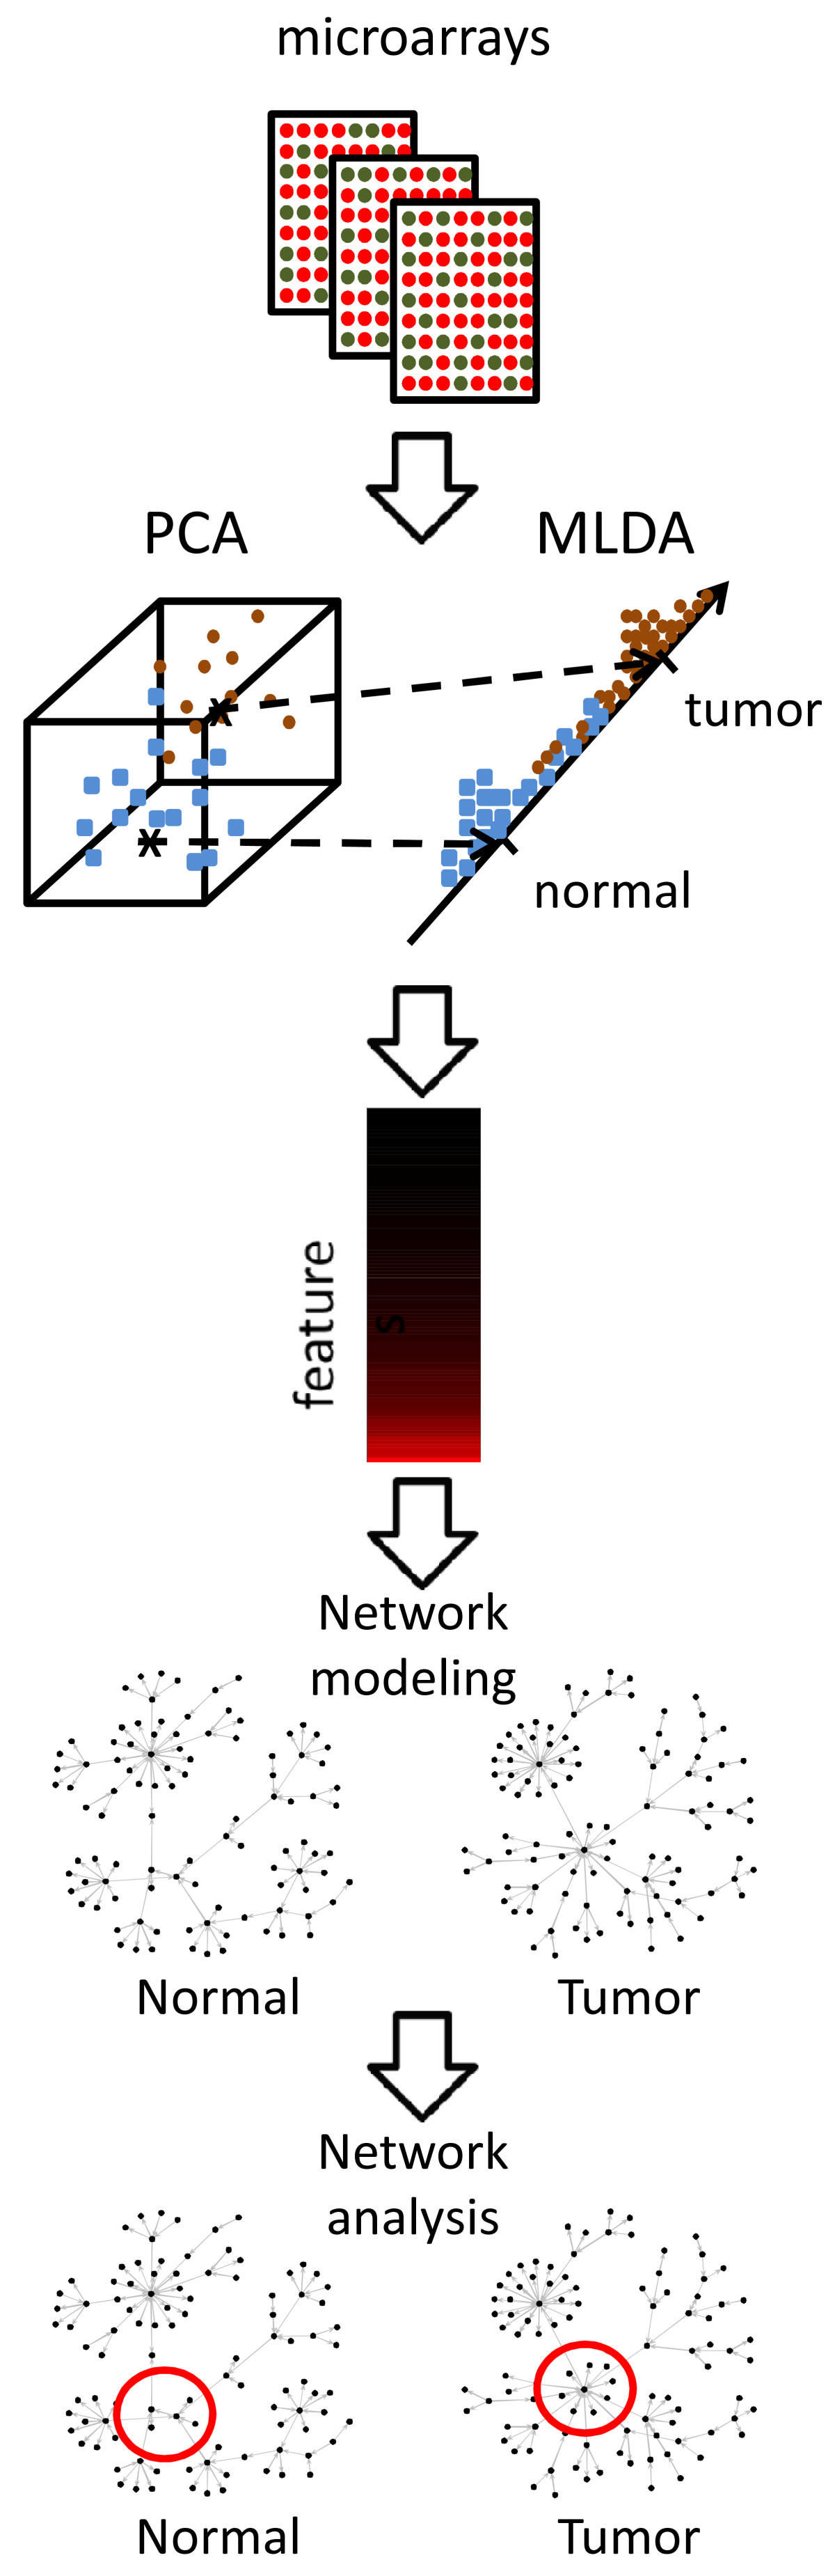 http://static-content.springer.com/image/art%3A10.1186%2F1752-0509-2-106/MediaObjects/12918_2008_Article_263_Fig1_HTML.jpg